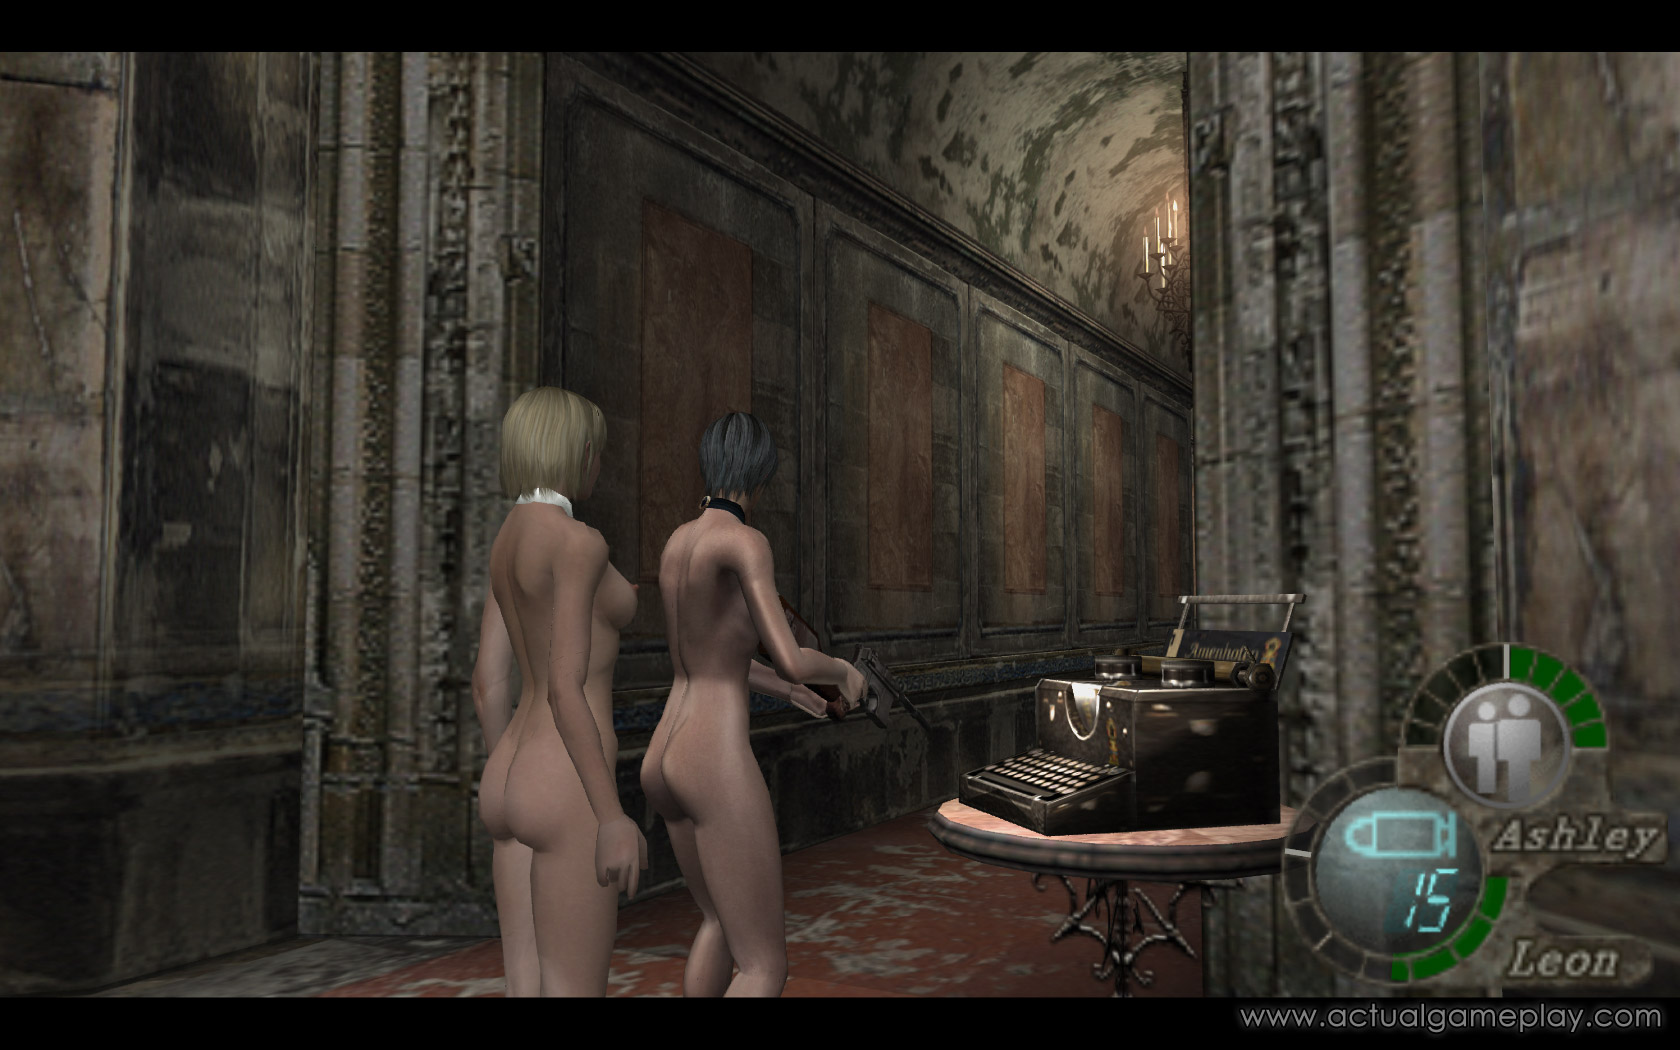 Resident evil 4 ashley porn video fucked model